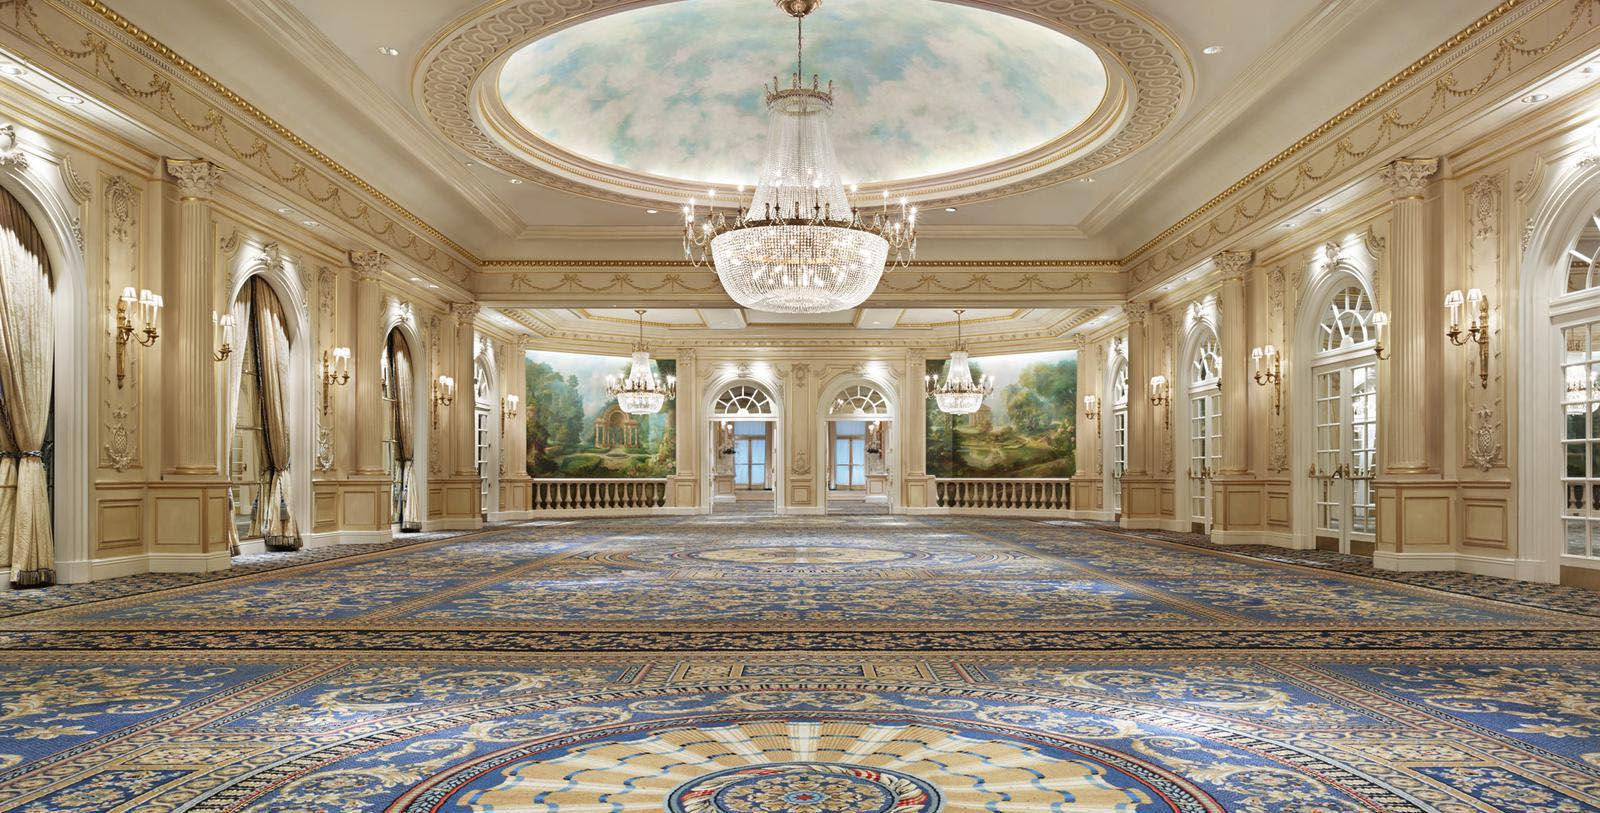 Image of Ballroom, JW Marriott Essex House New York, New York, 1931, Member of Historic Hotels of America, Discover